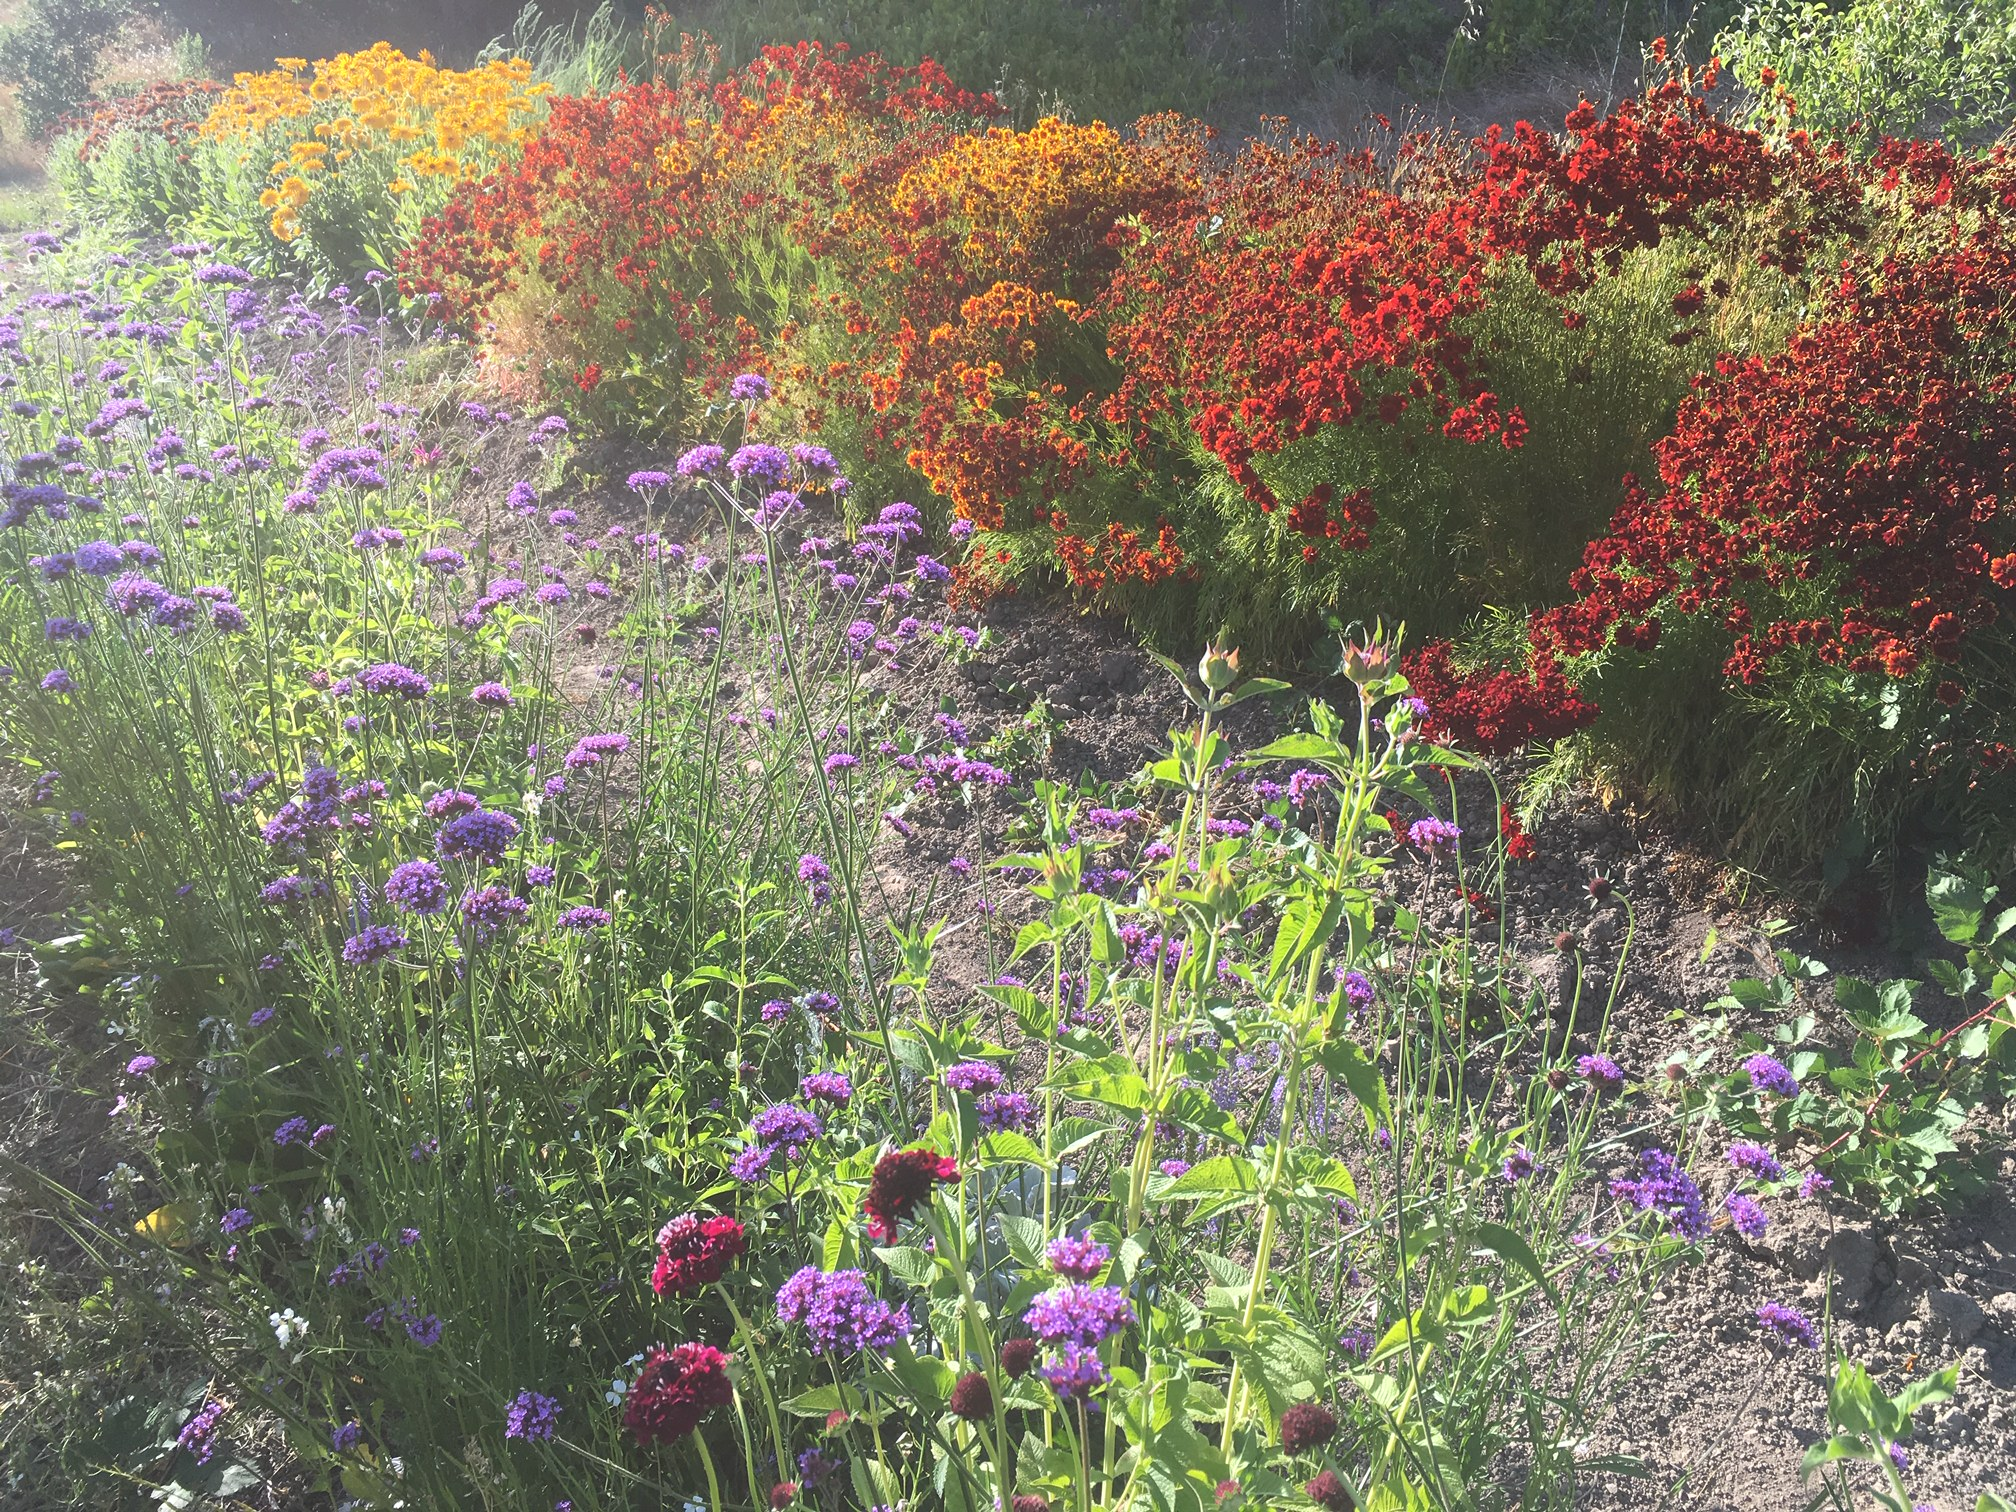 Vebena, Coriopsis and Rudbeckia blooming in the West garden. Now that's a whimsical thought.